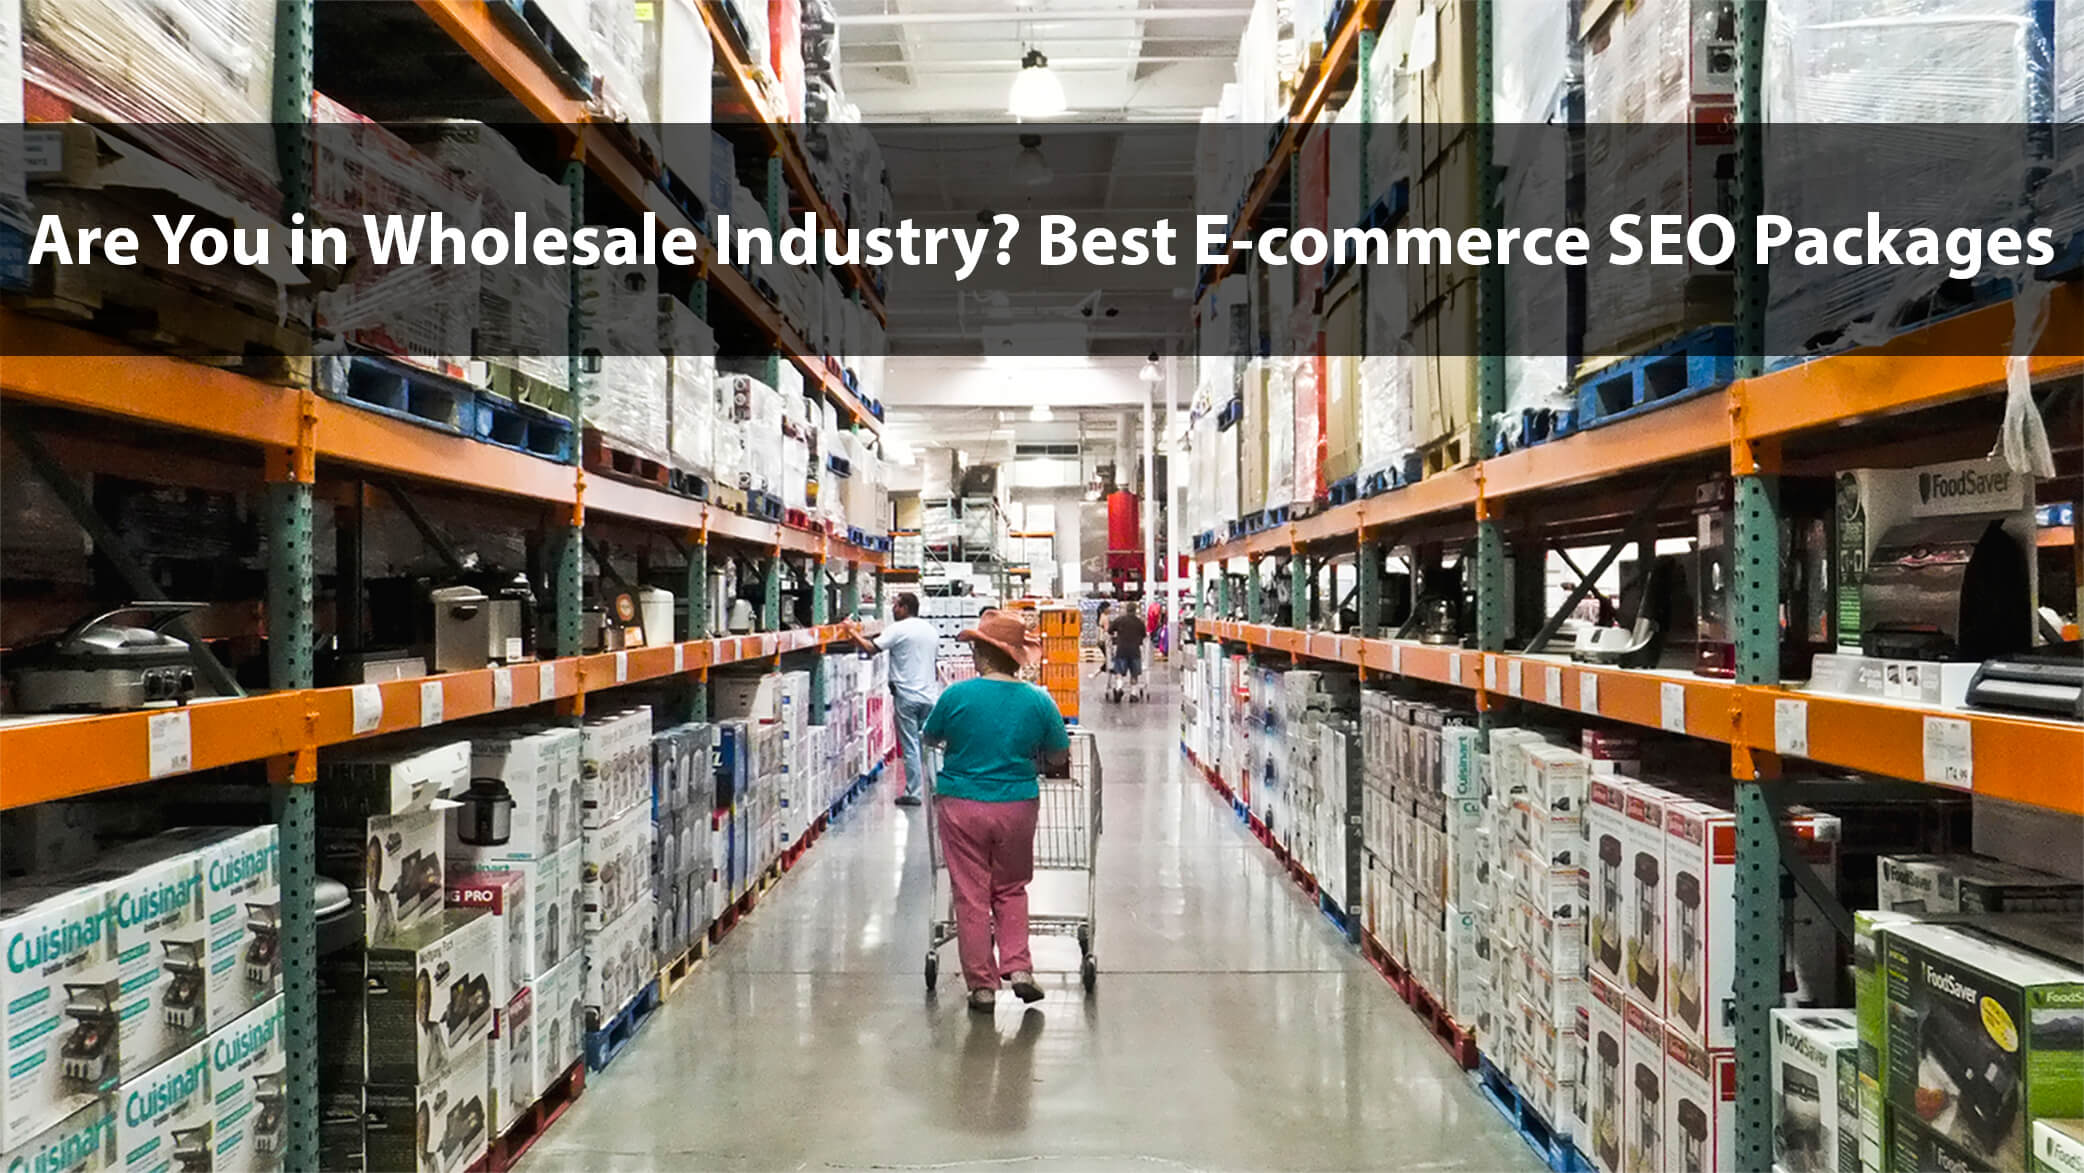 Are you in Wholesale Industry? Best eCommerce SEO Packages